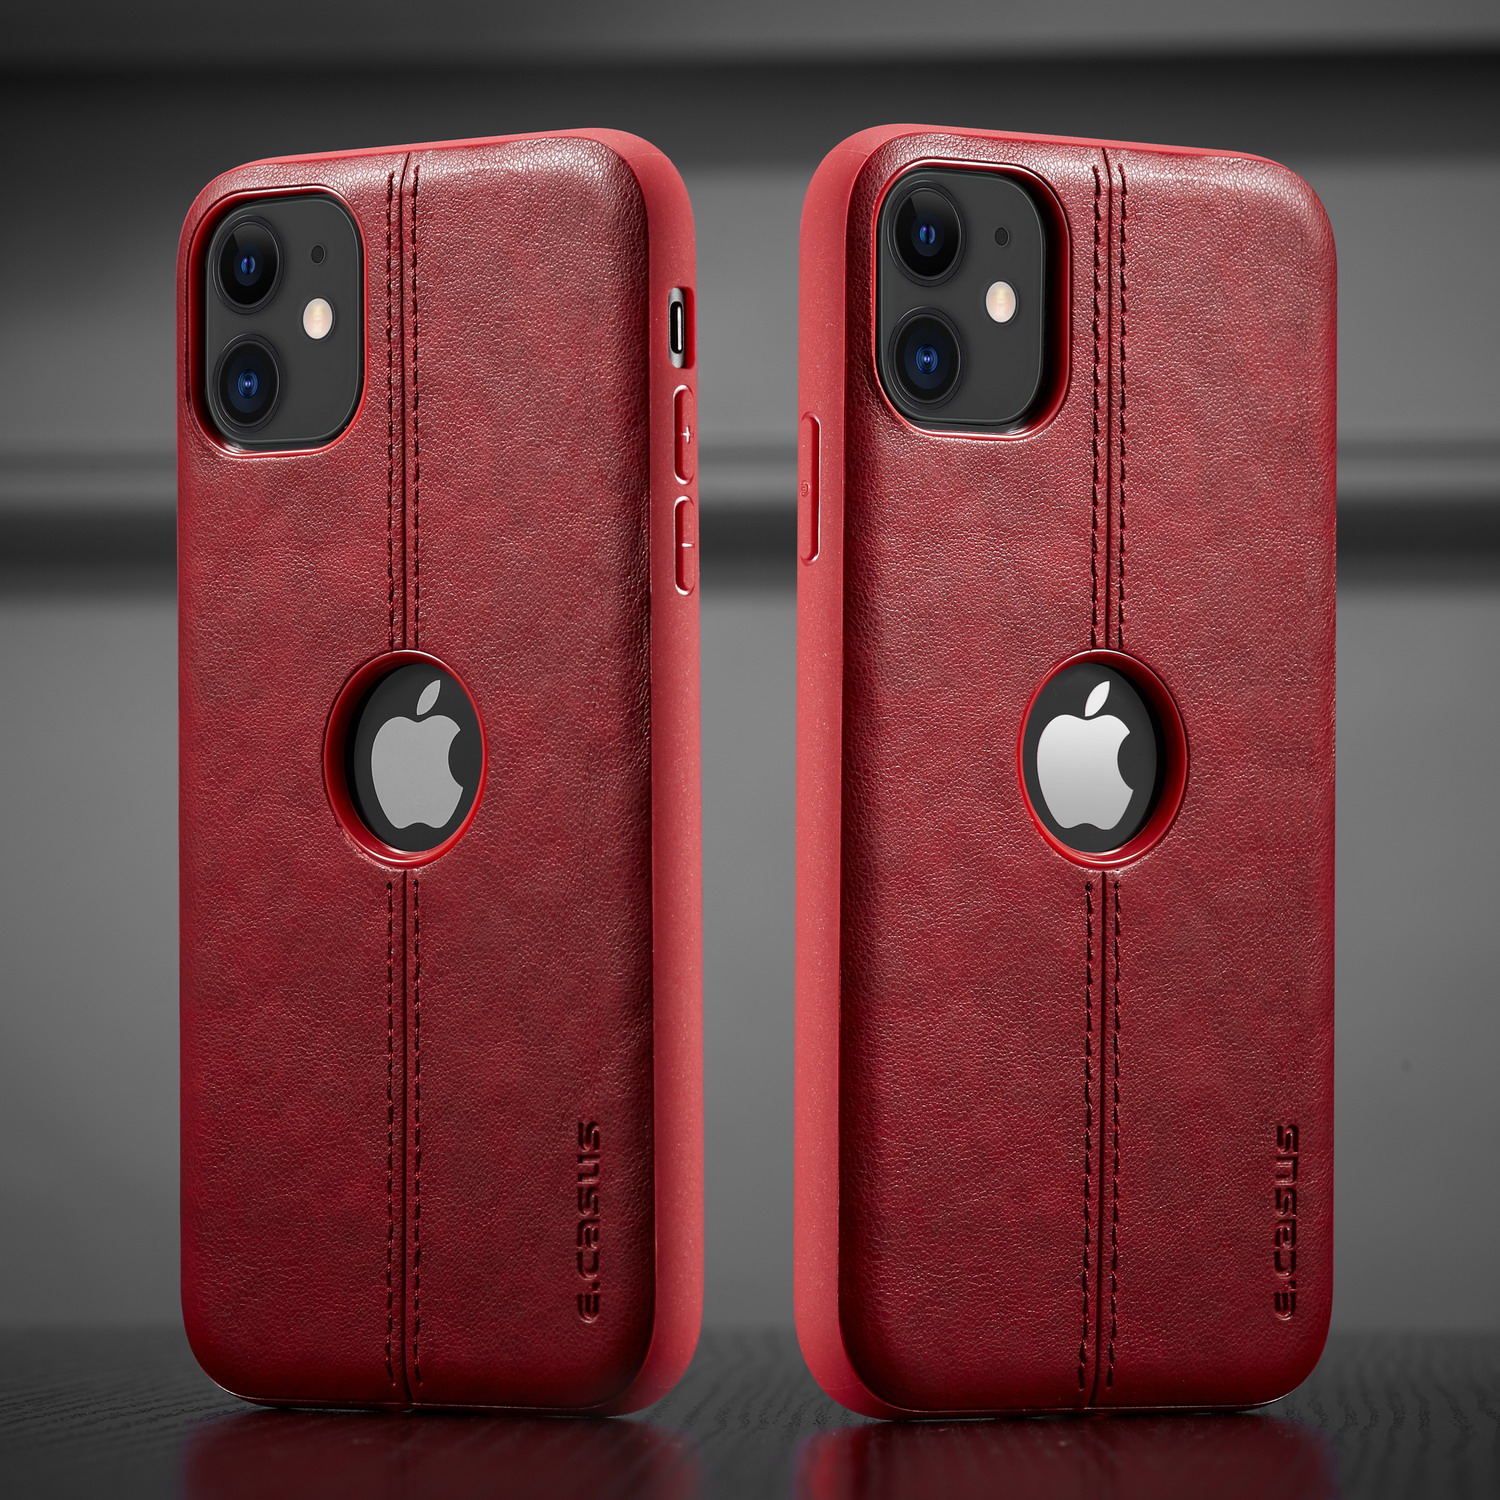 H292eb492cf124343827122f0ba590426G For iPhone 11 11 Pro 11 Pro Max Case New SLIM Luxury Leather Back Case Cover For iPhone 11 XR XS MAX 8 7 6 Plus Shockproof Case